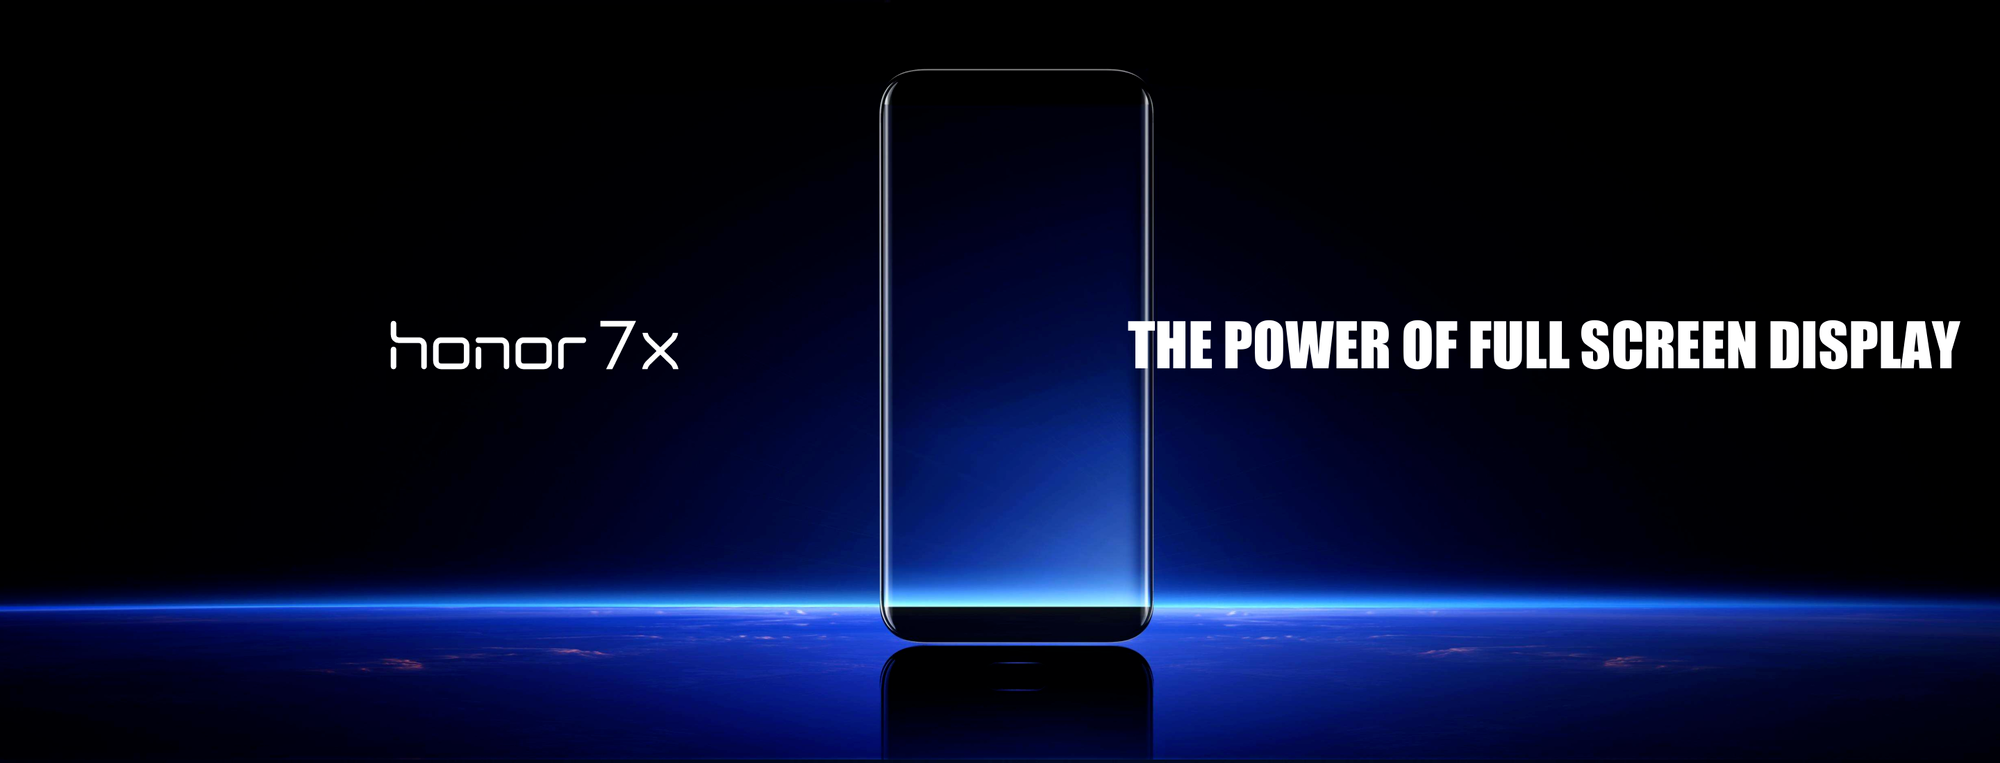 Huawei unveils the Honor 7X with a Kirin 659 SoC and a 5 93